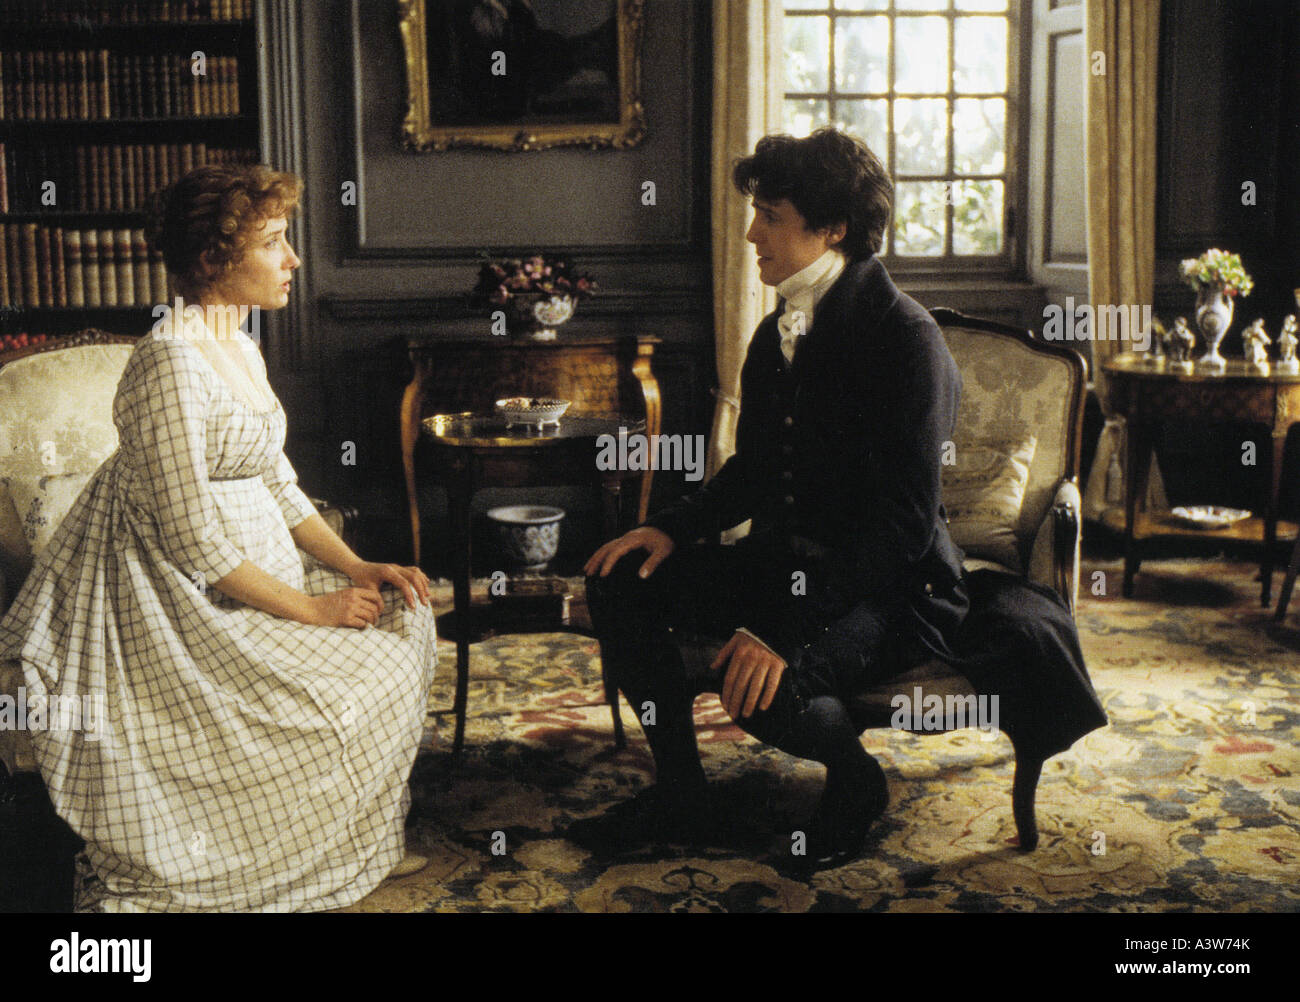 SENSE AND SENSIBLITY 1995 Columbia film with Emma Thompson and Hugh Grant - Stock Image